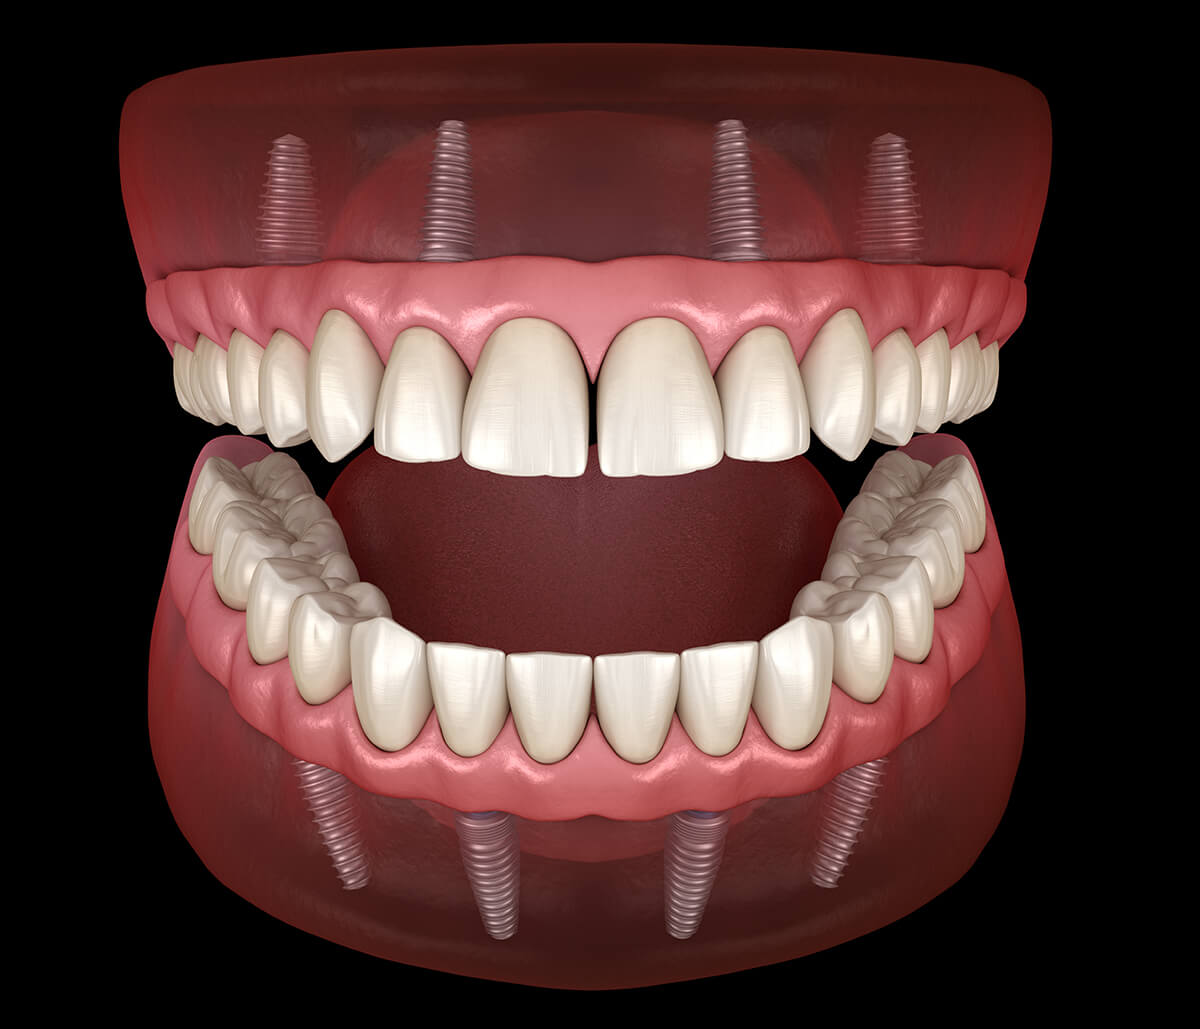 How Can All-On-4 Implants for Teeth Improve Oral Health?